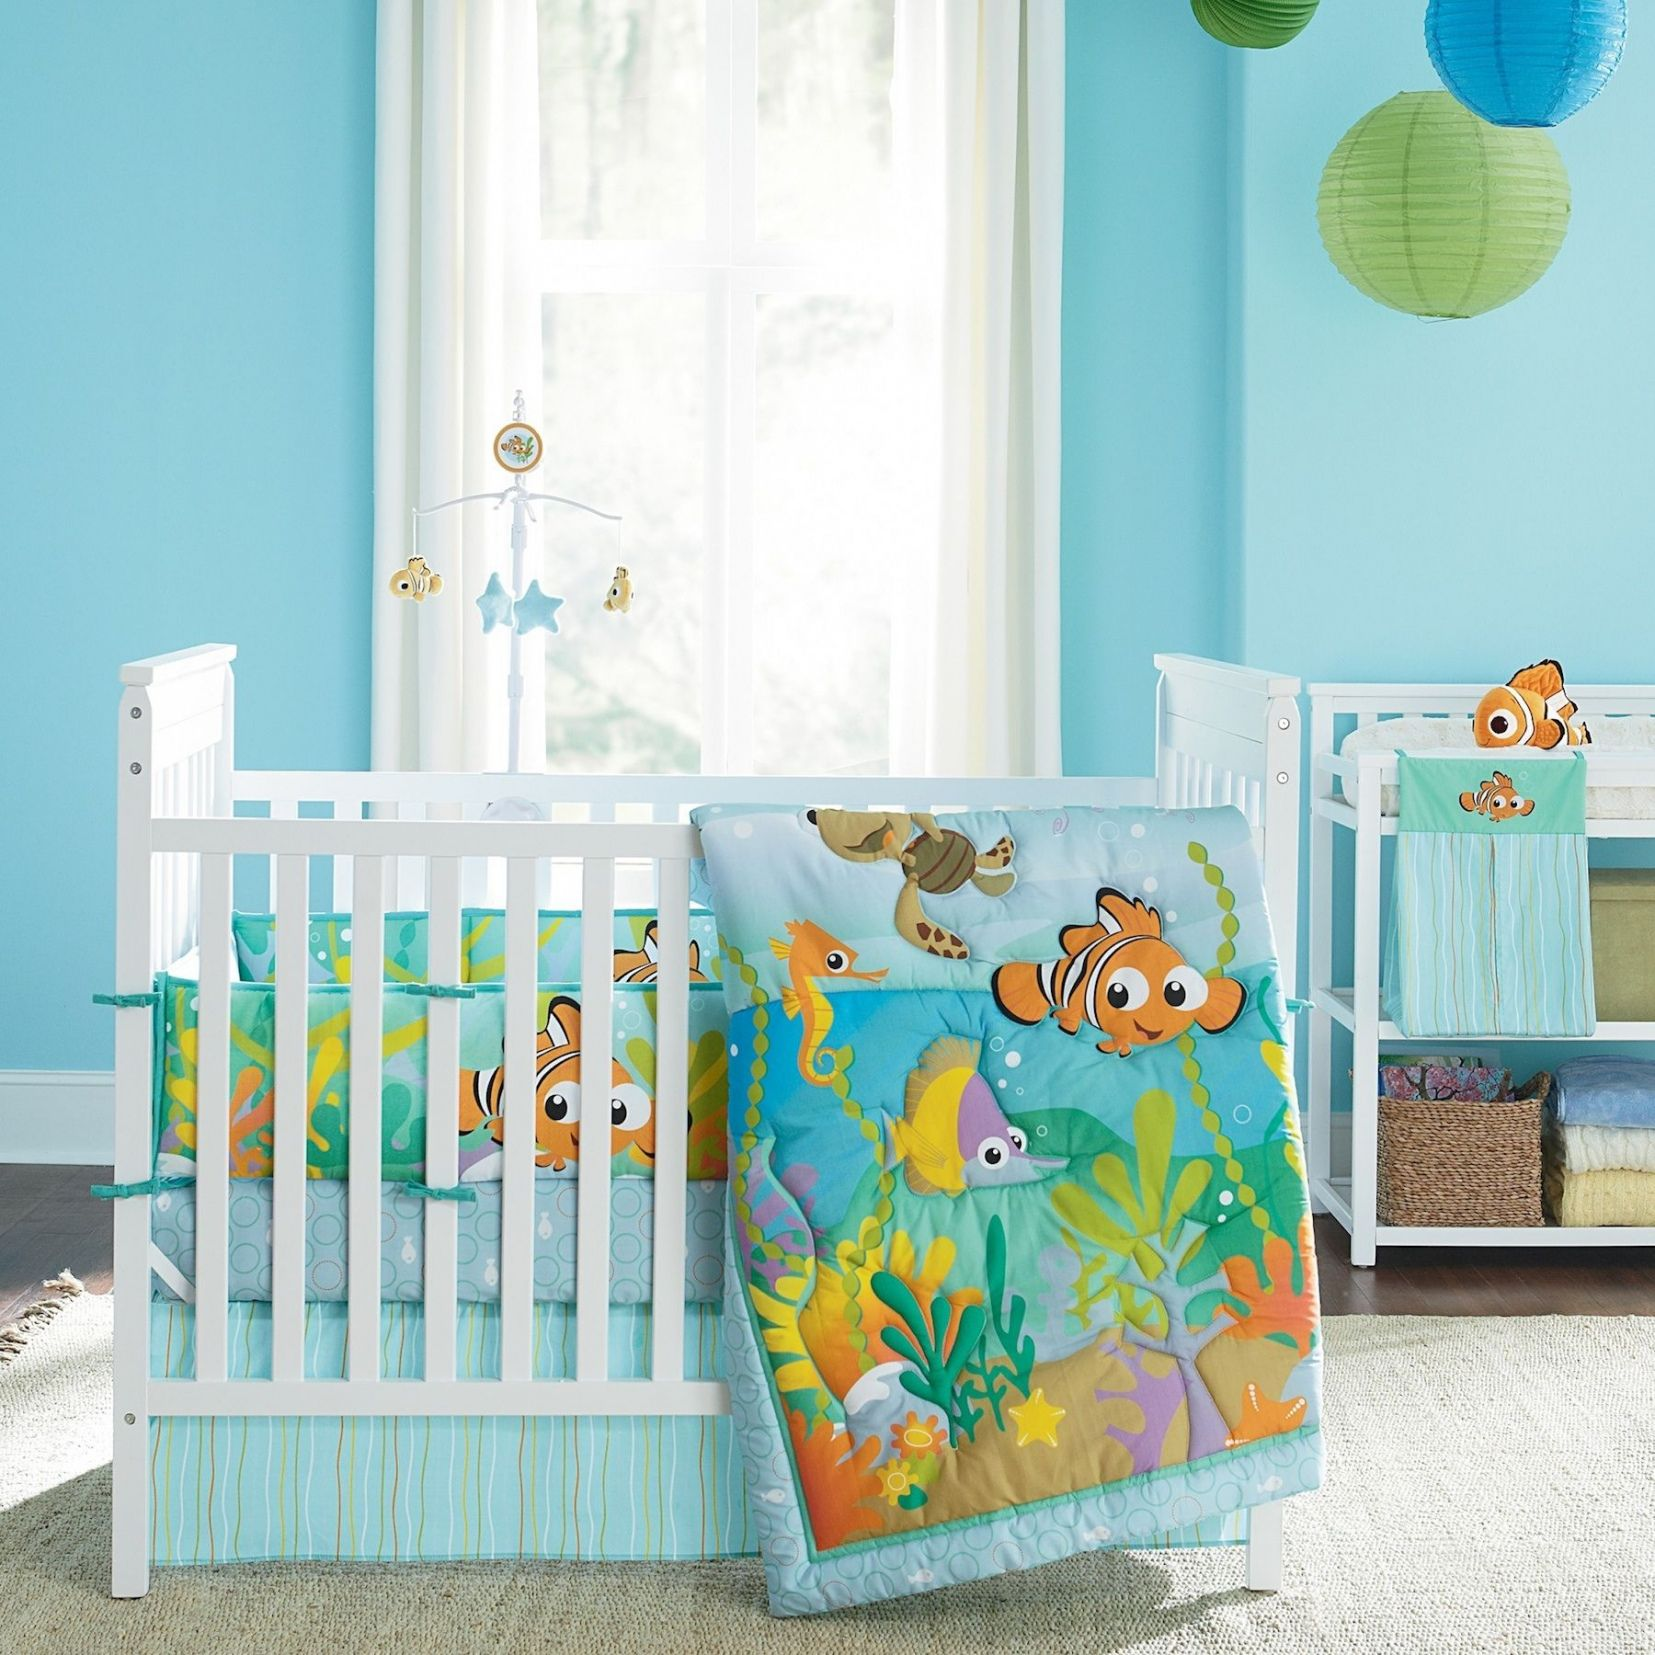 70 Finding Nemo Baby Room Master Bedroom Furniture Ideas Check More At Http